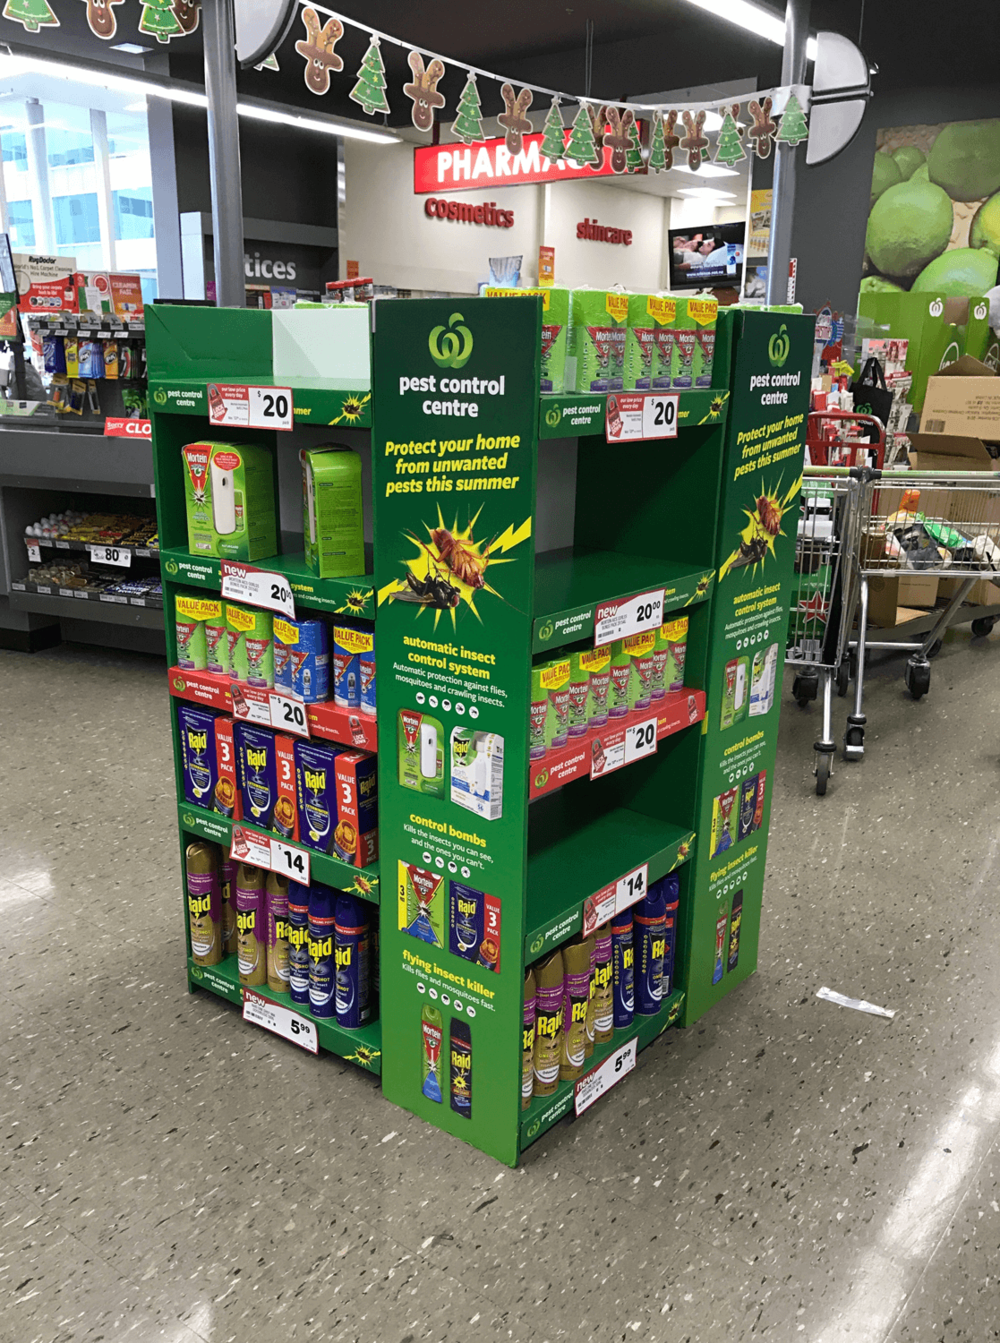 Cardboard grocery pallet display Display design and manufacture | Visuals | Art | Print | Kit, pack and despatch nationwide to retailers